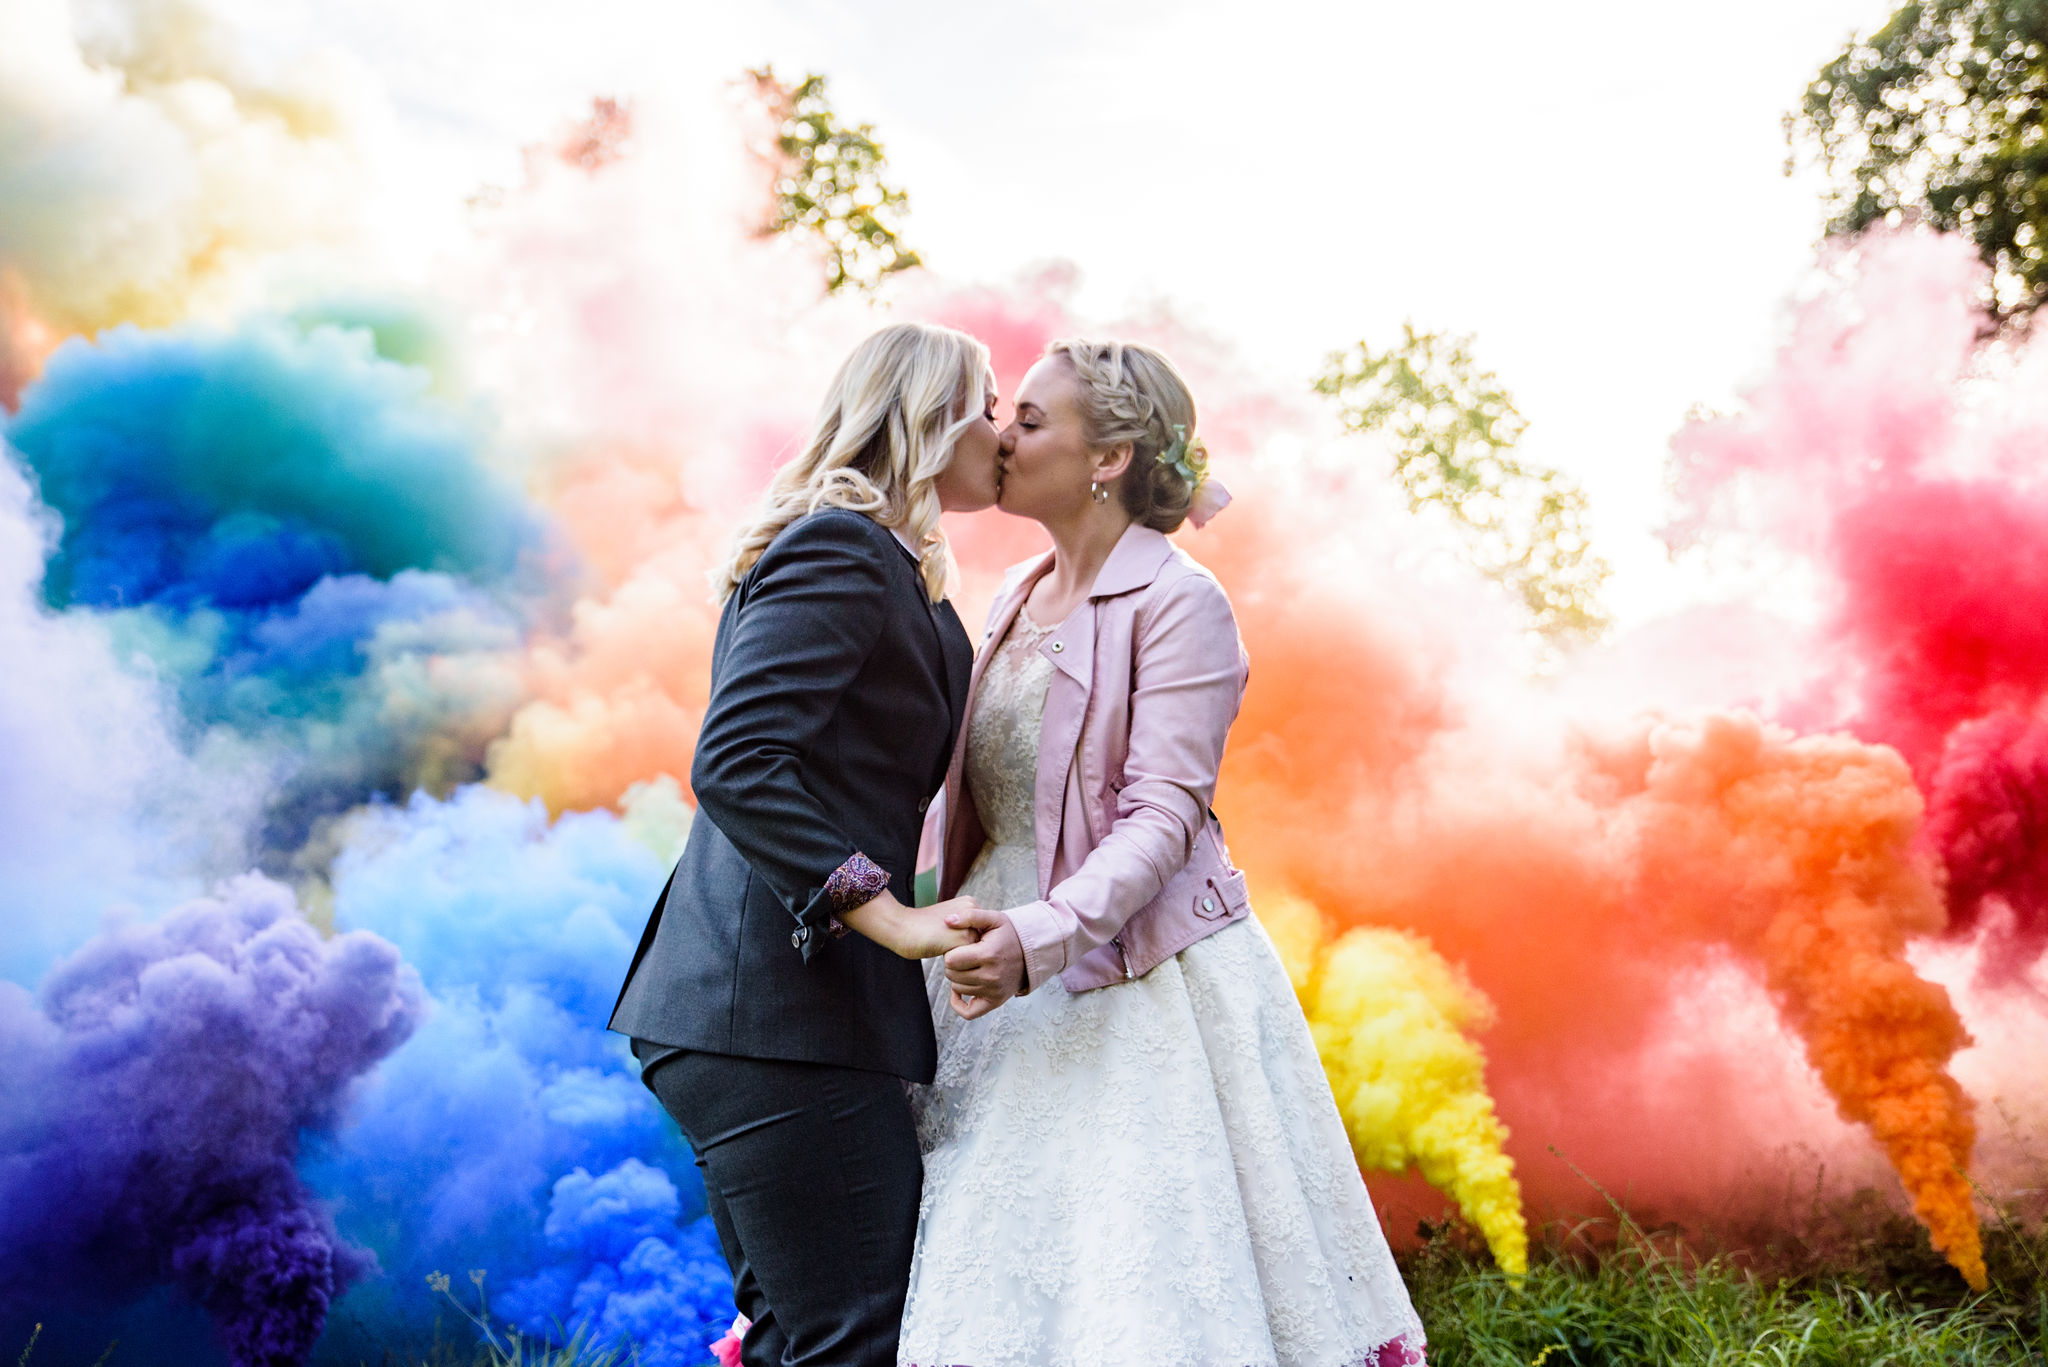 Chantelle Goble Photography - Rainbow wedding - same sex wedding - smoke bomb wedding